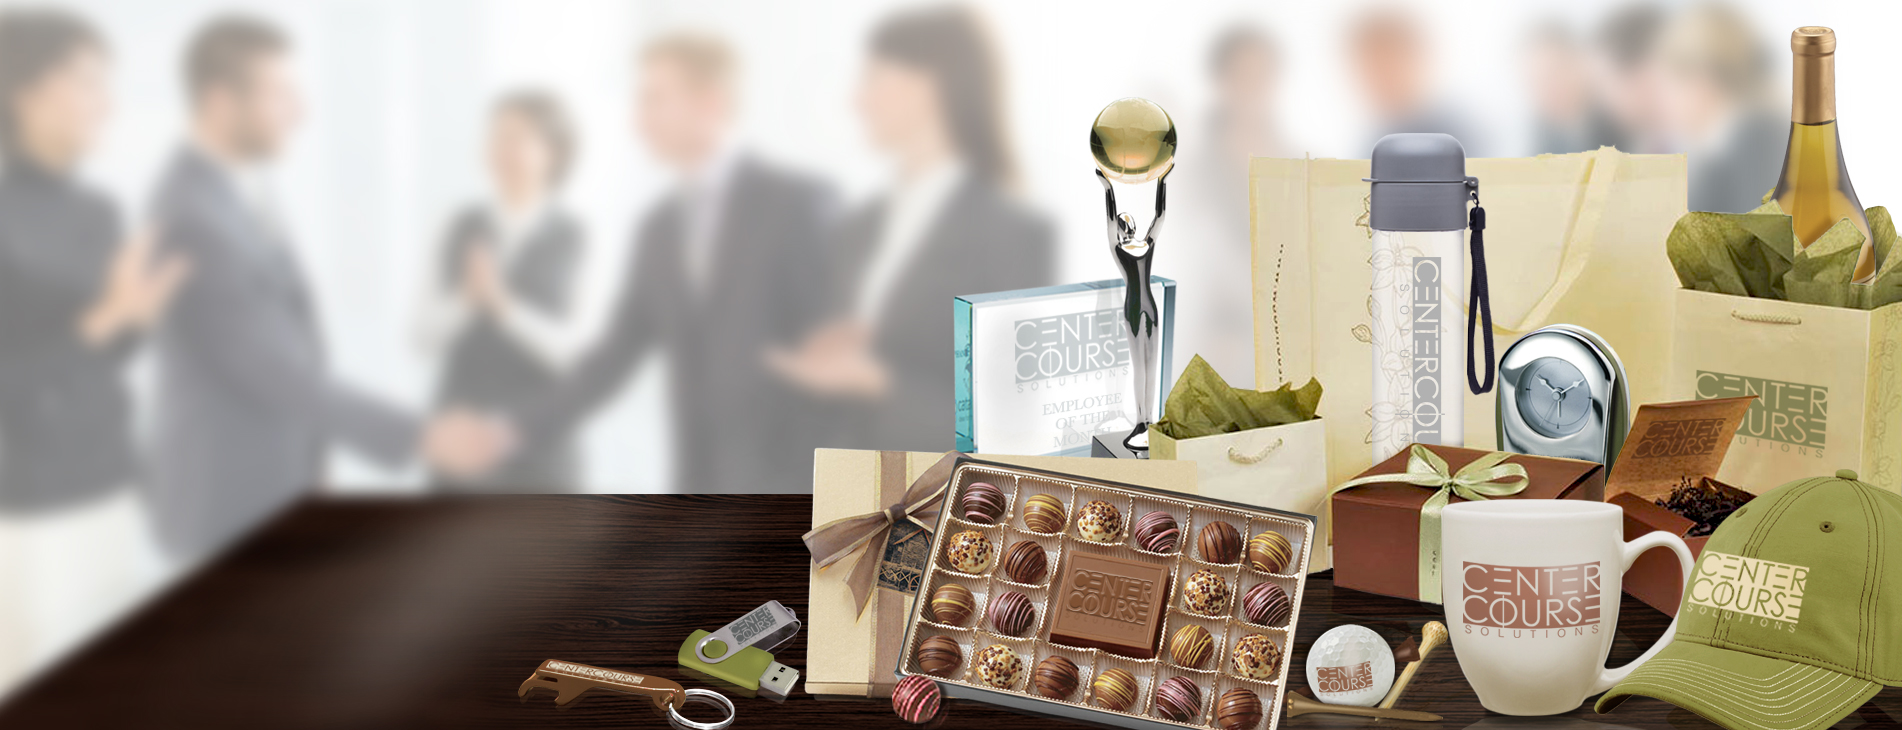 Corporate gifts are Always in Season!